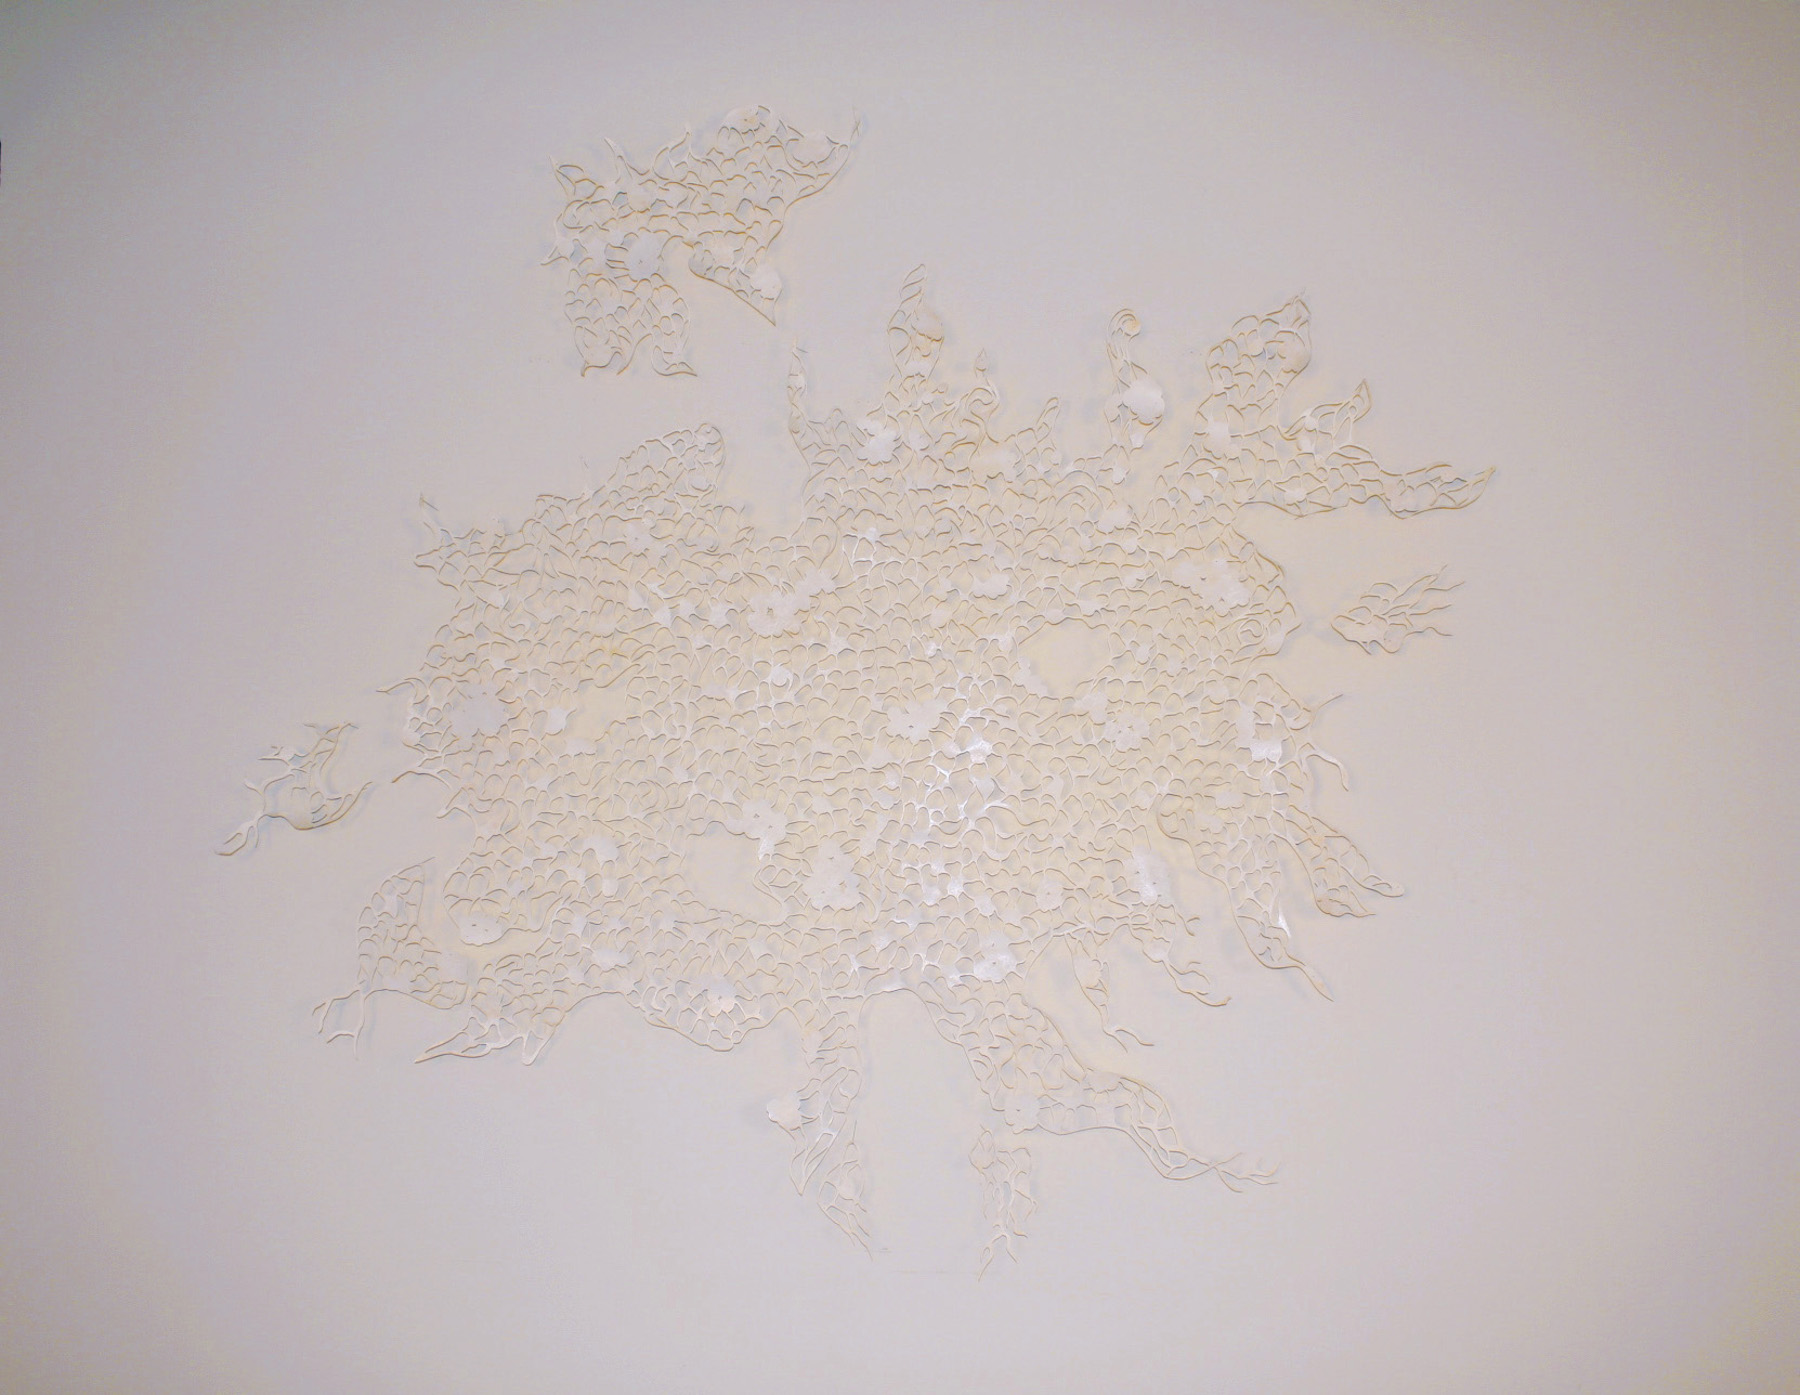 Visible Absence , acrylic on cut Tyvek, 6' x 8' (approx.)